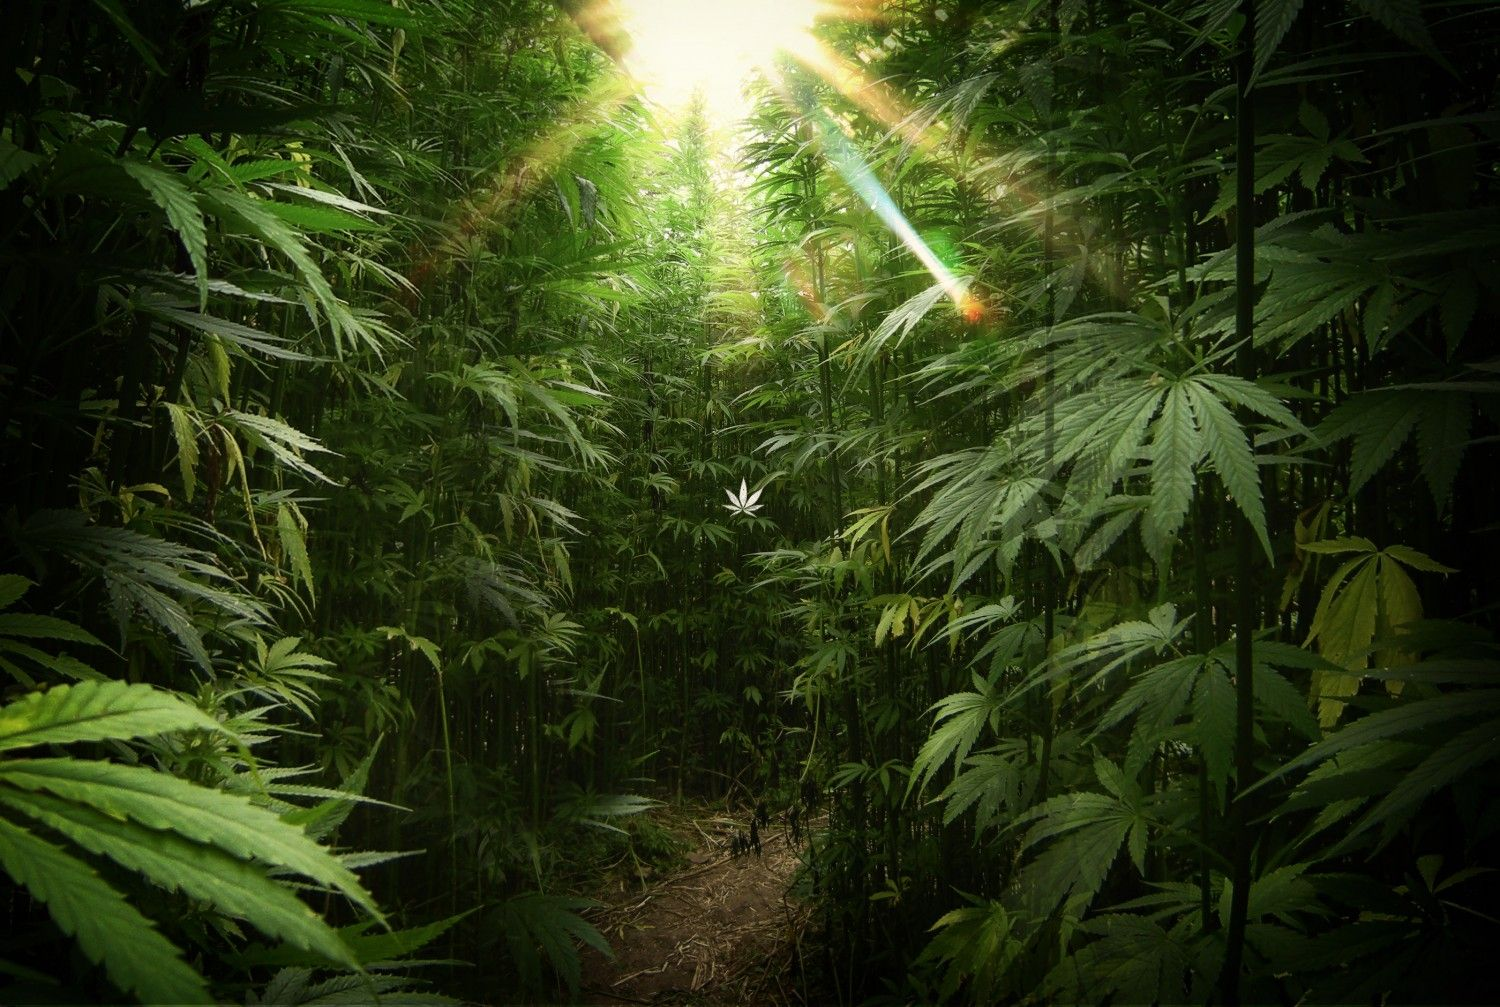 Live Weed Wallpapers 420 | The Best HD Weed Wallpaper Backgrounds | many high times | Pinterest ...